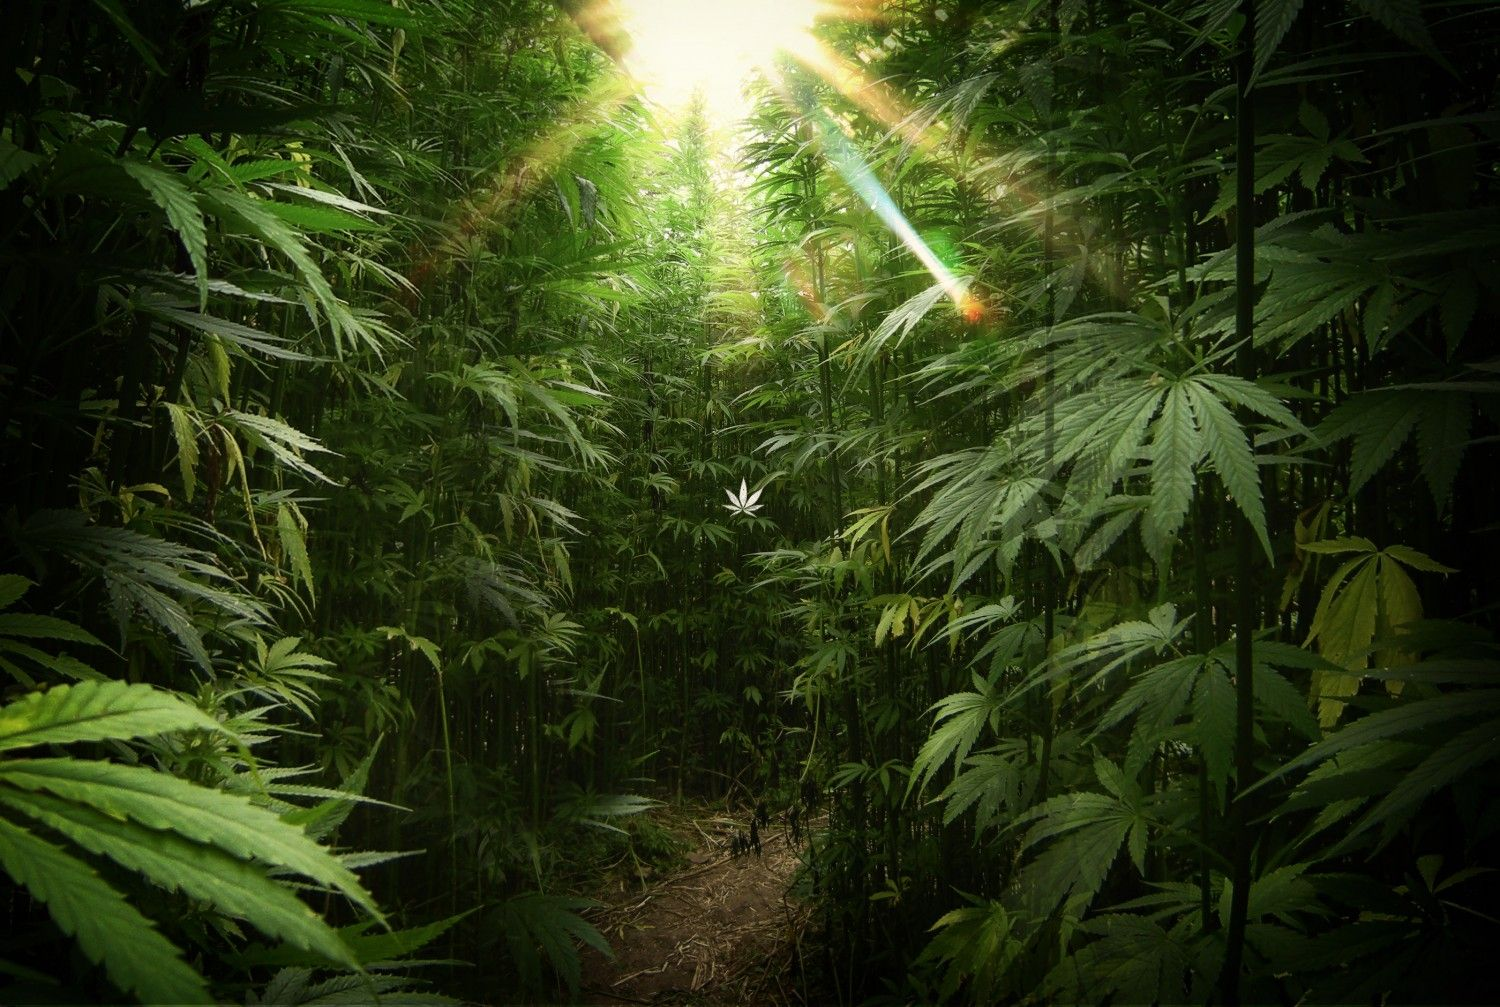 Live Weed Wallpapers 420 | The Best HD Weed Wallpaper Backgrounds | many high times | Pinterest ...